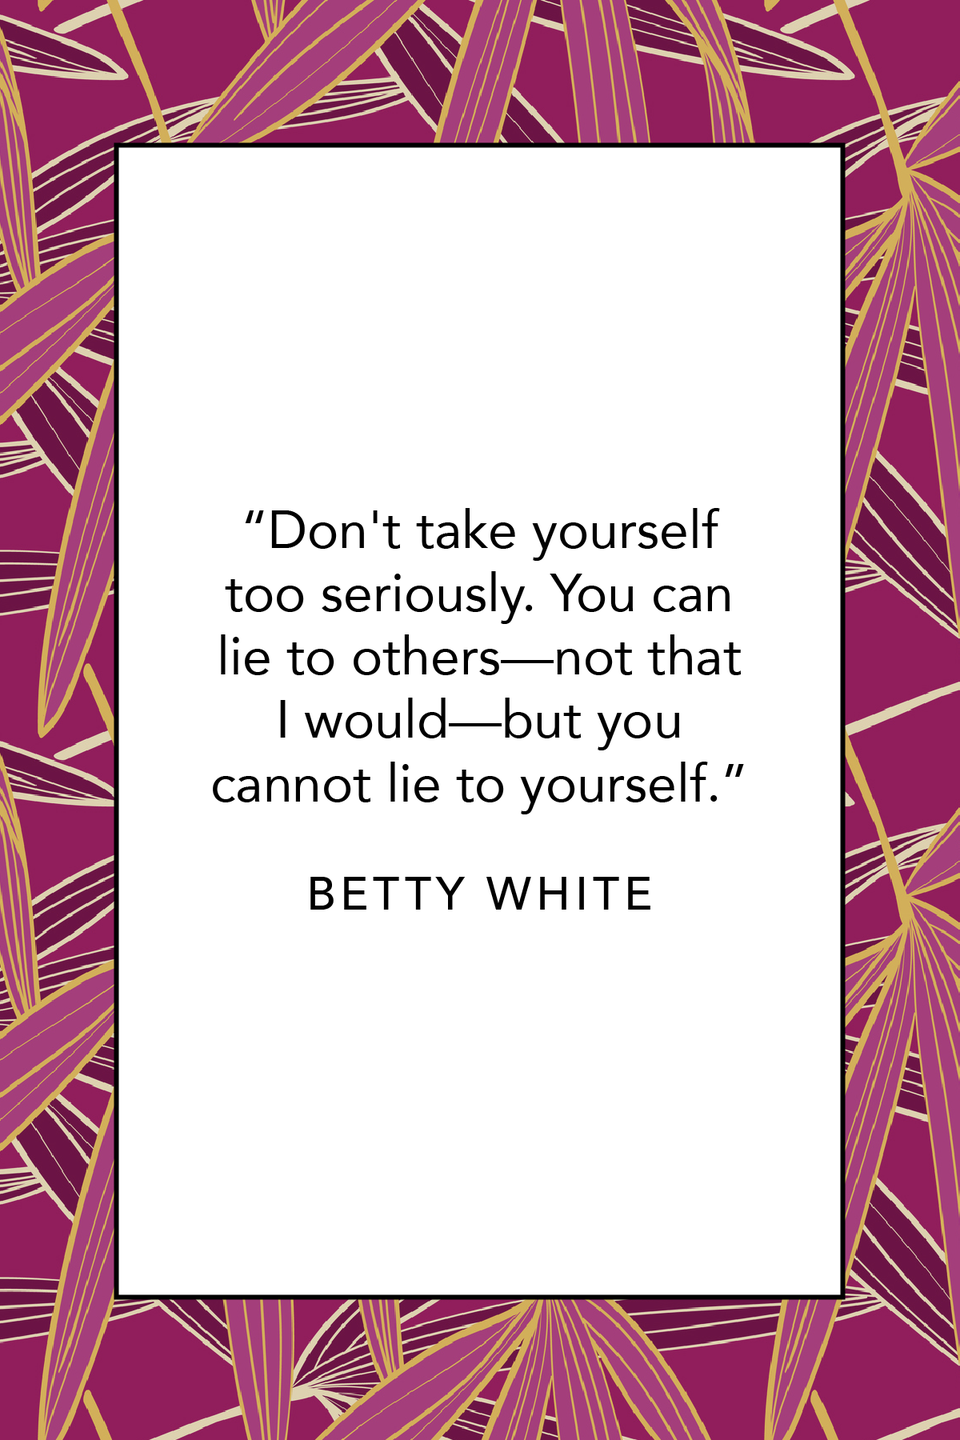 """<p>Ahead of her 99th birthday, she said, """"Don't take yourself too seriously. You can lie to others—not that I would—but you cannot lie to yourself,"""" in a <a href=""""https://people.com/tv/betty-white-preps-for-99th-birthday-and-says-a-sense-of-humor-keeps-her-forever-young/"""" rel=""""nofollow noopener"""" target=""""_blank"""" data-ylk=""""slk:People interview"""" class=""""link rapid-noclick-resp""""><em>People</em> interview</a>.</p>"""